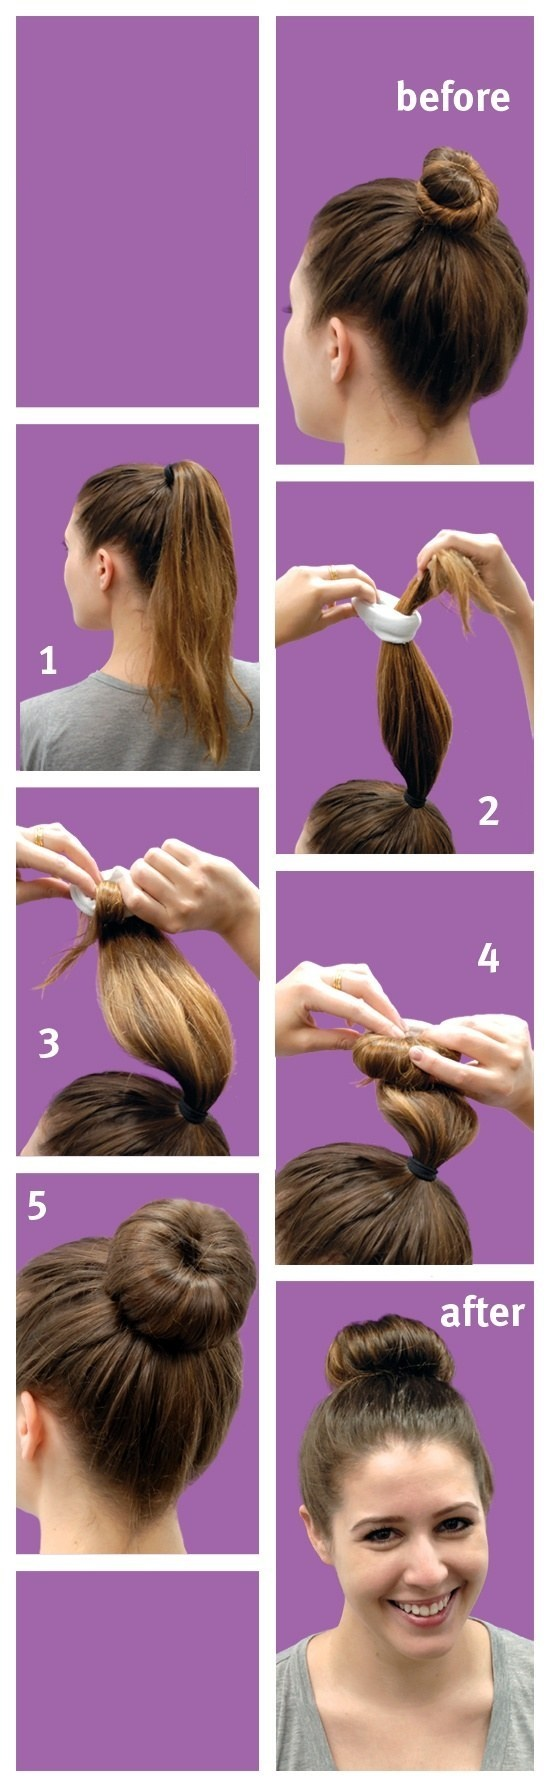 hairstyle gym7